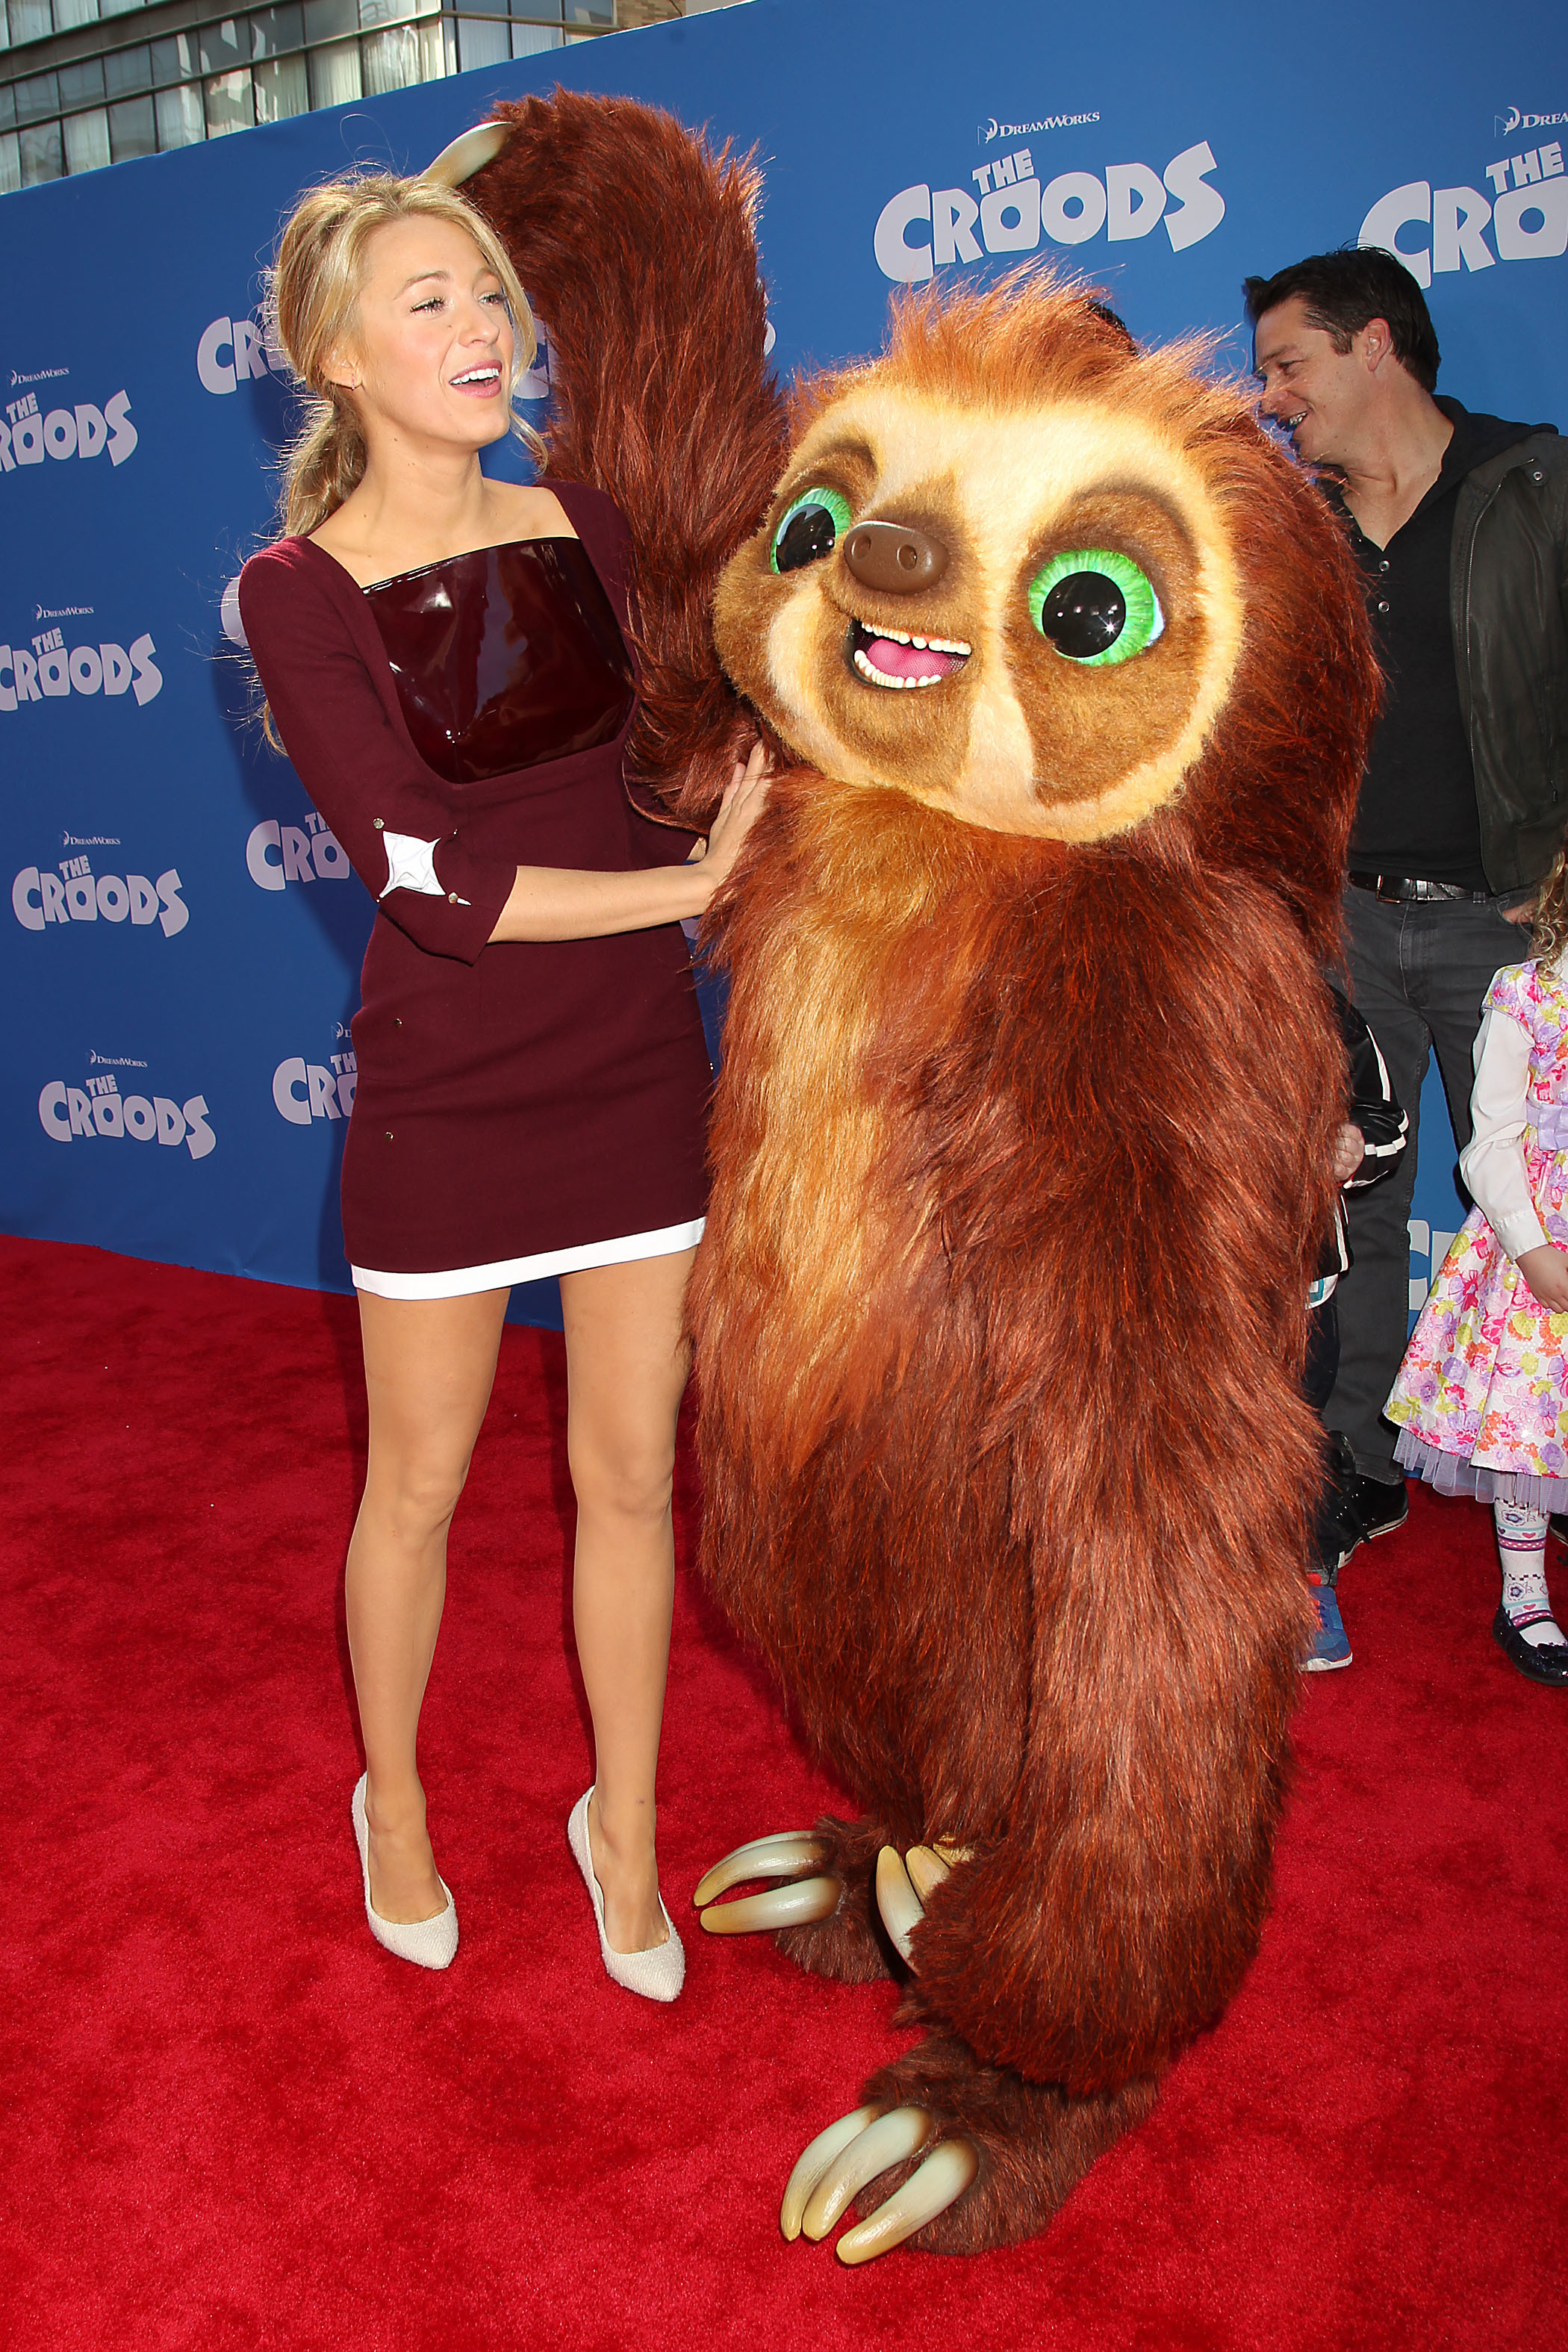 Blake Lively The Croods